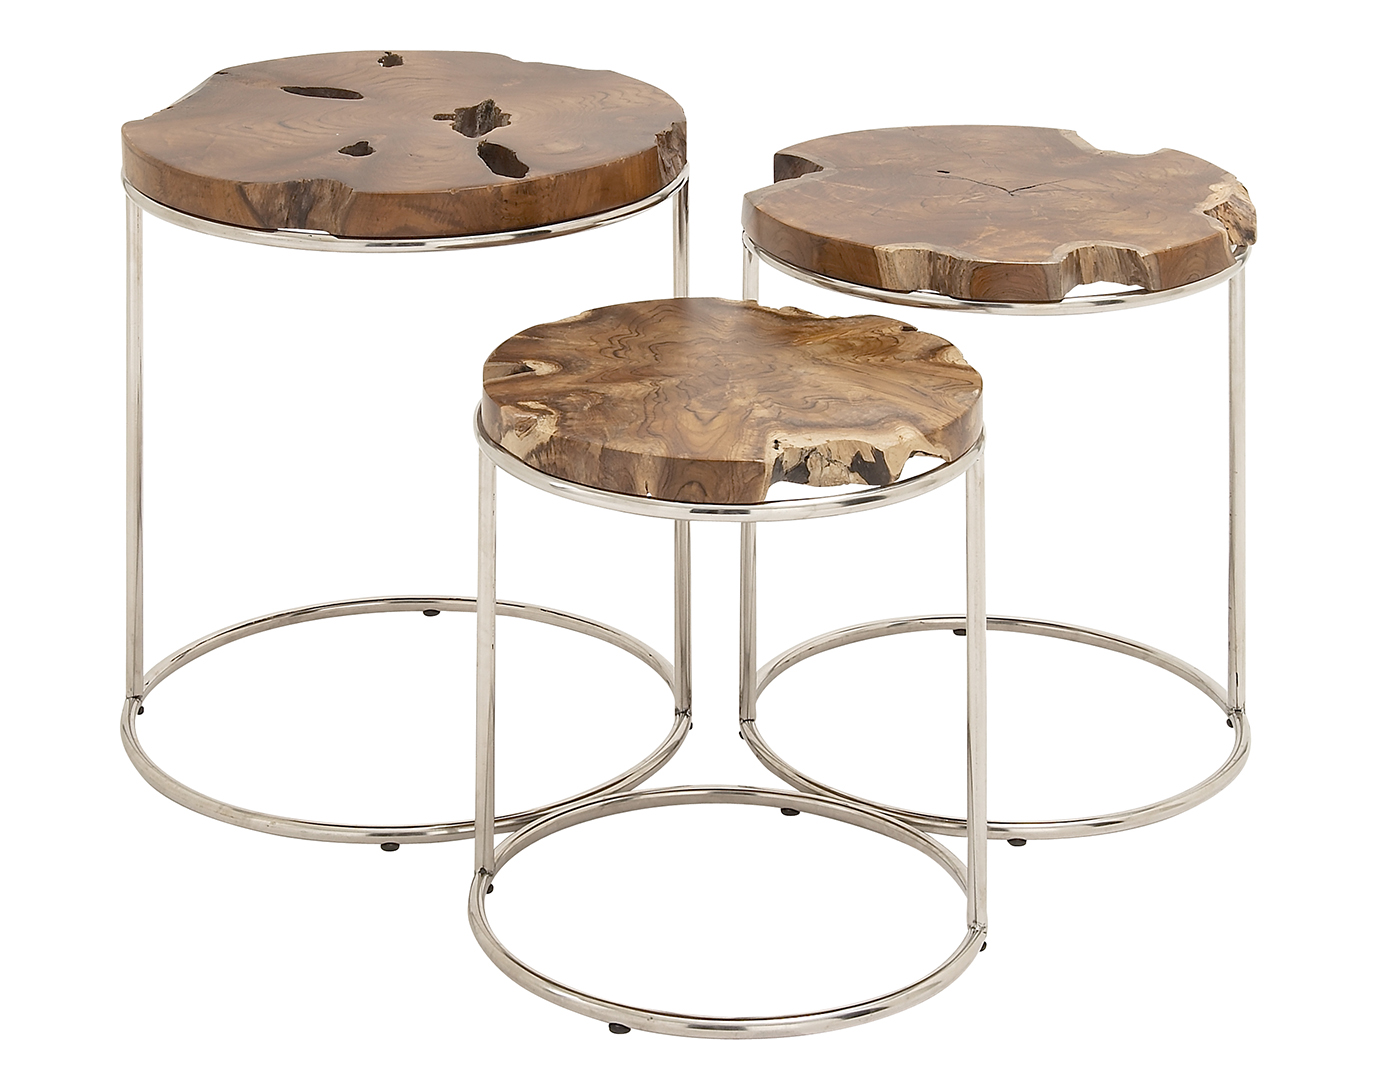 decor accents tables steinhafels half circle accent table teak and metal round set kids furniture antique white square coffee outdoor lamps oak chairside small patio side lamp